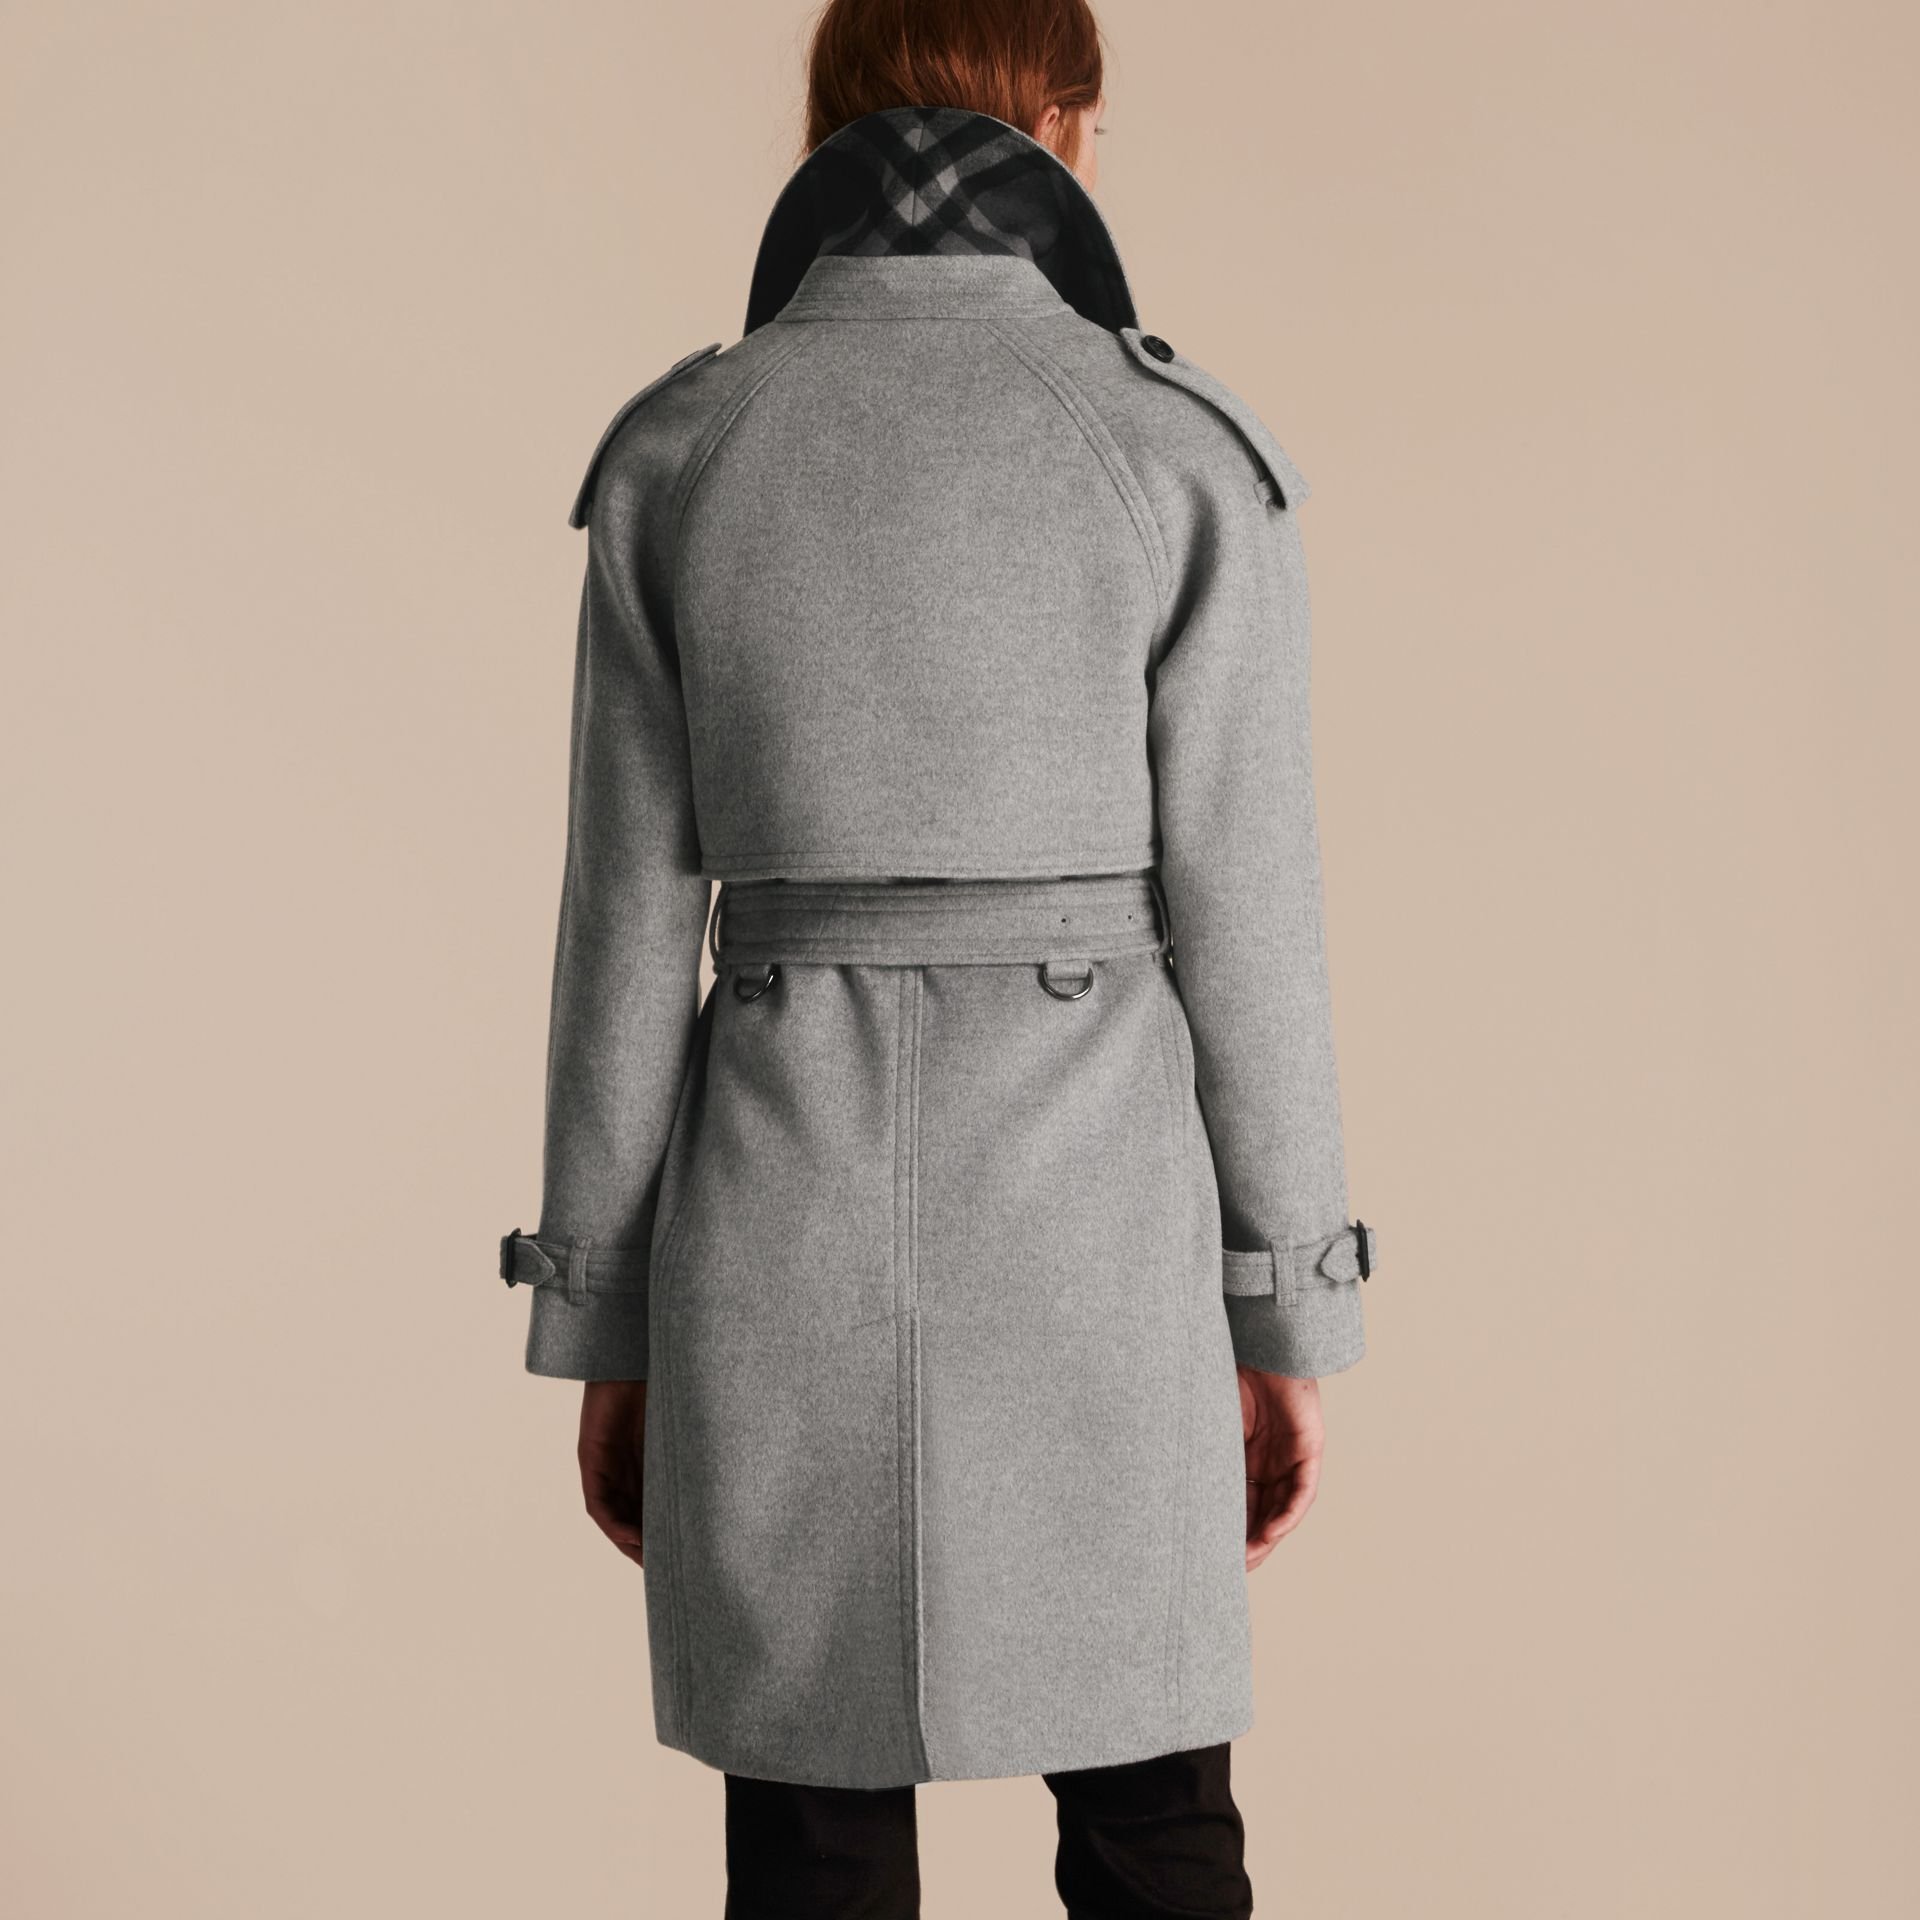 Pale grey melange Wool Cashmere Trench Coat with Oversize Detailing - gallery image 3